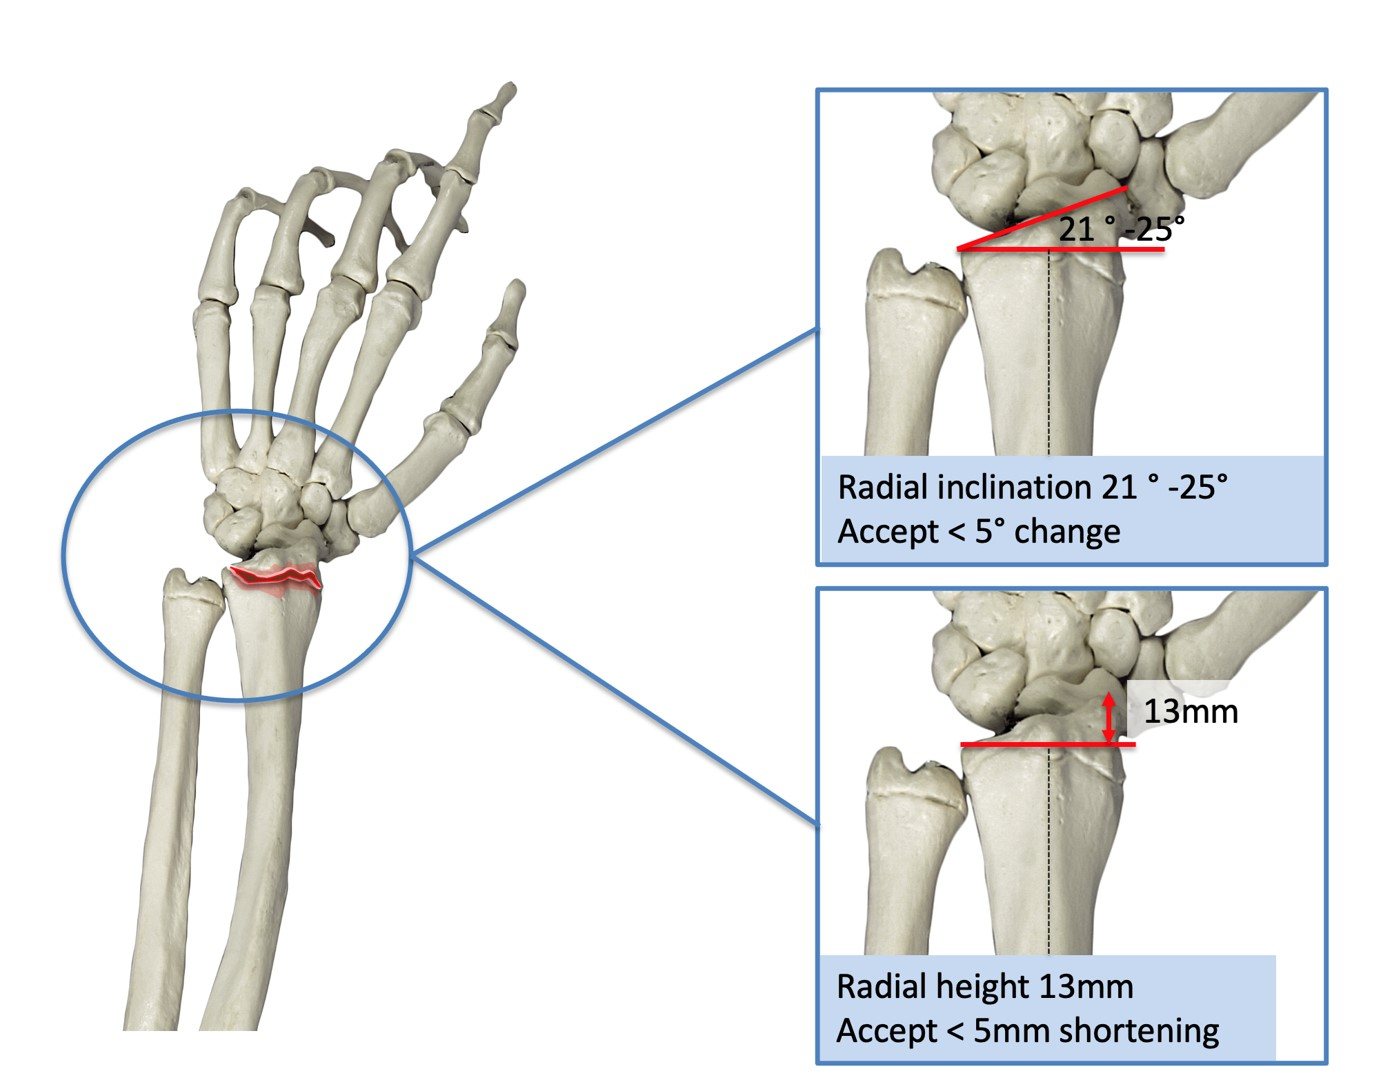 Acceptable malunion for distal radius fracture